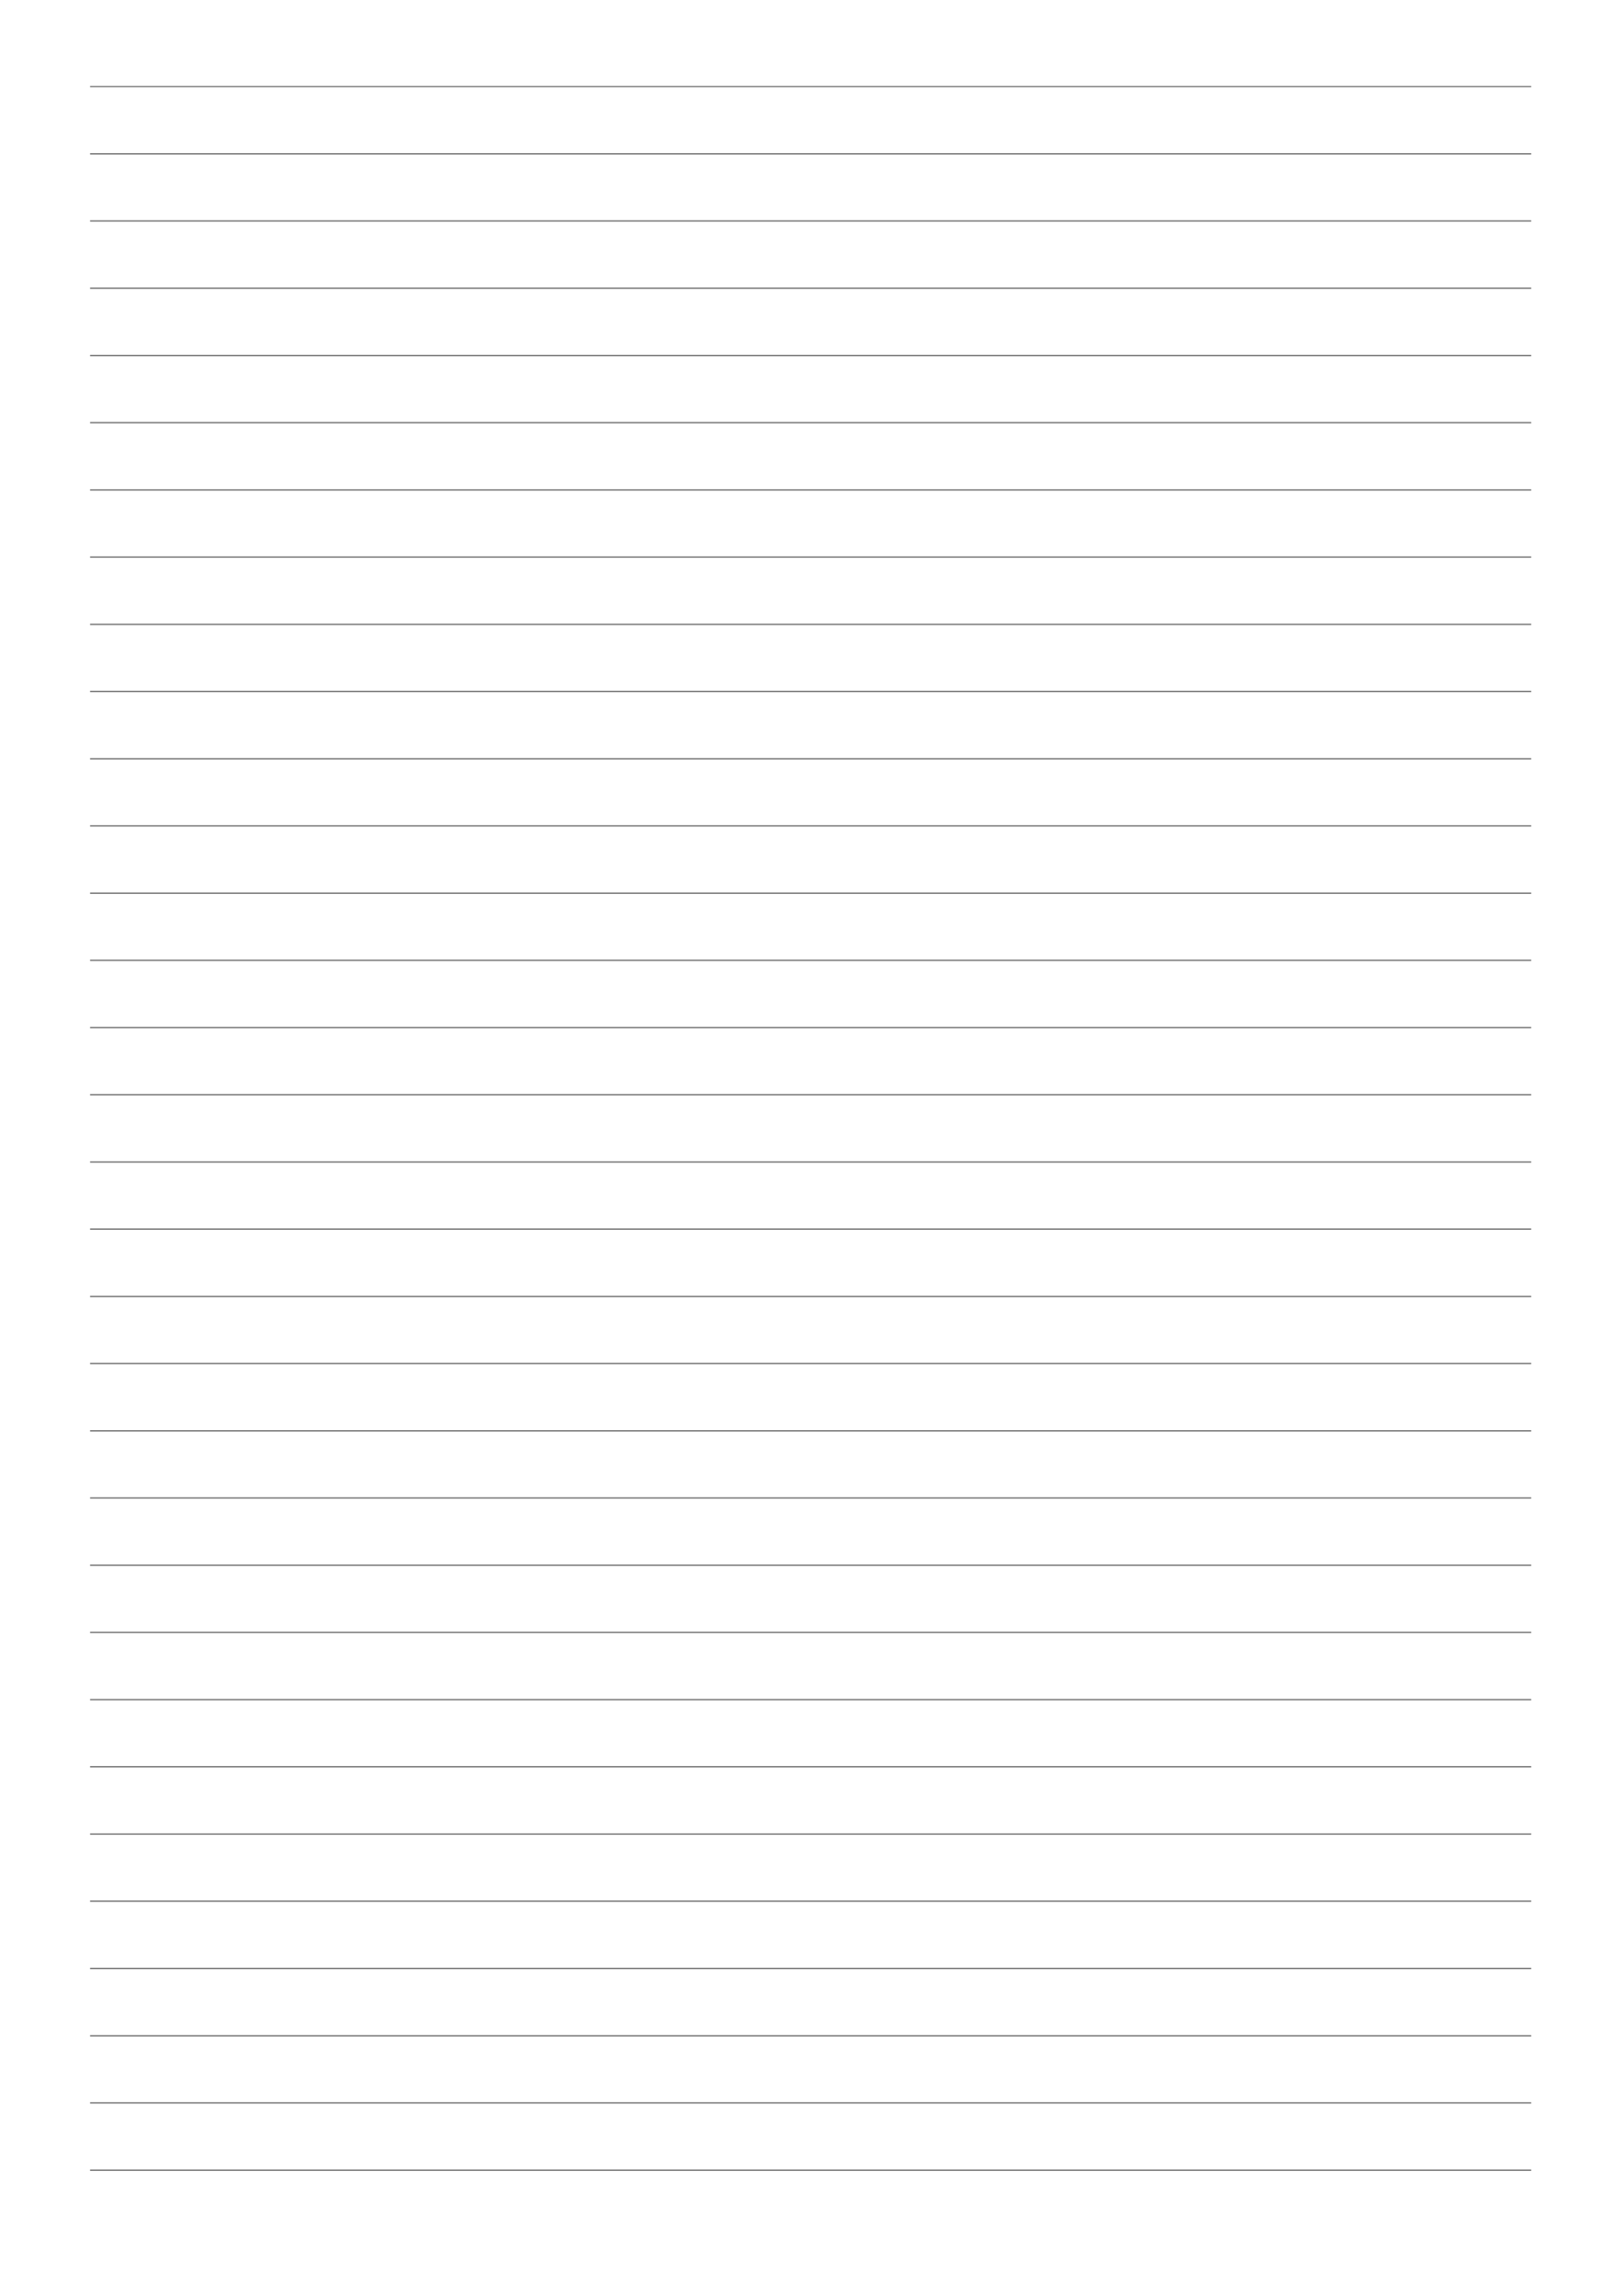 Wide Ruled Printable Lined Paper Pdf